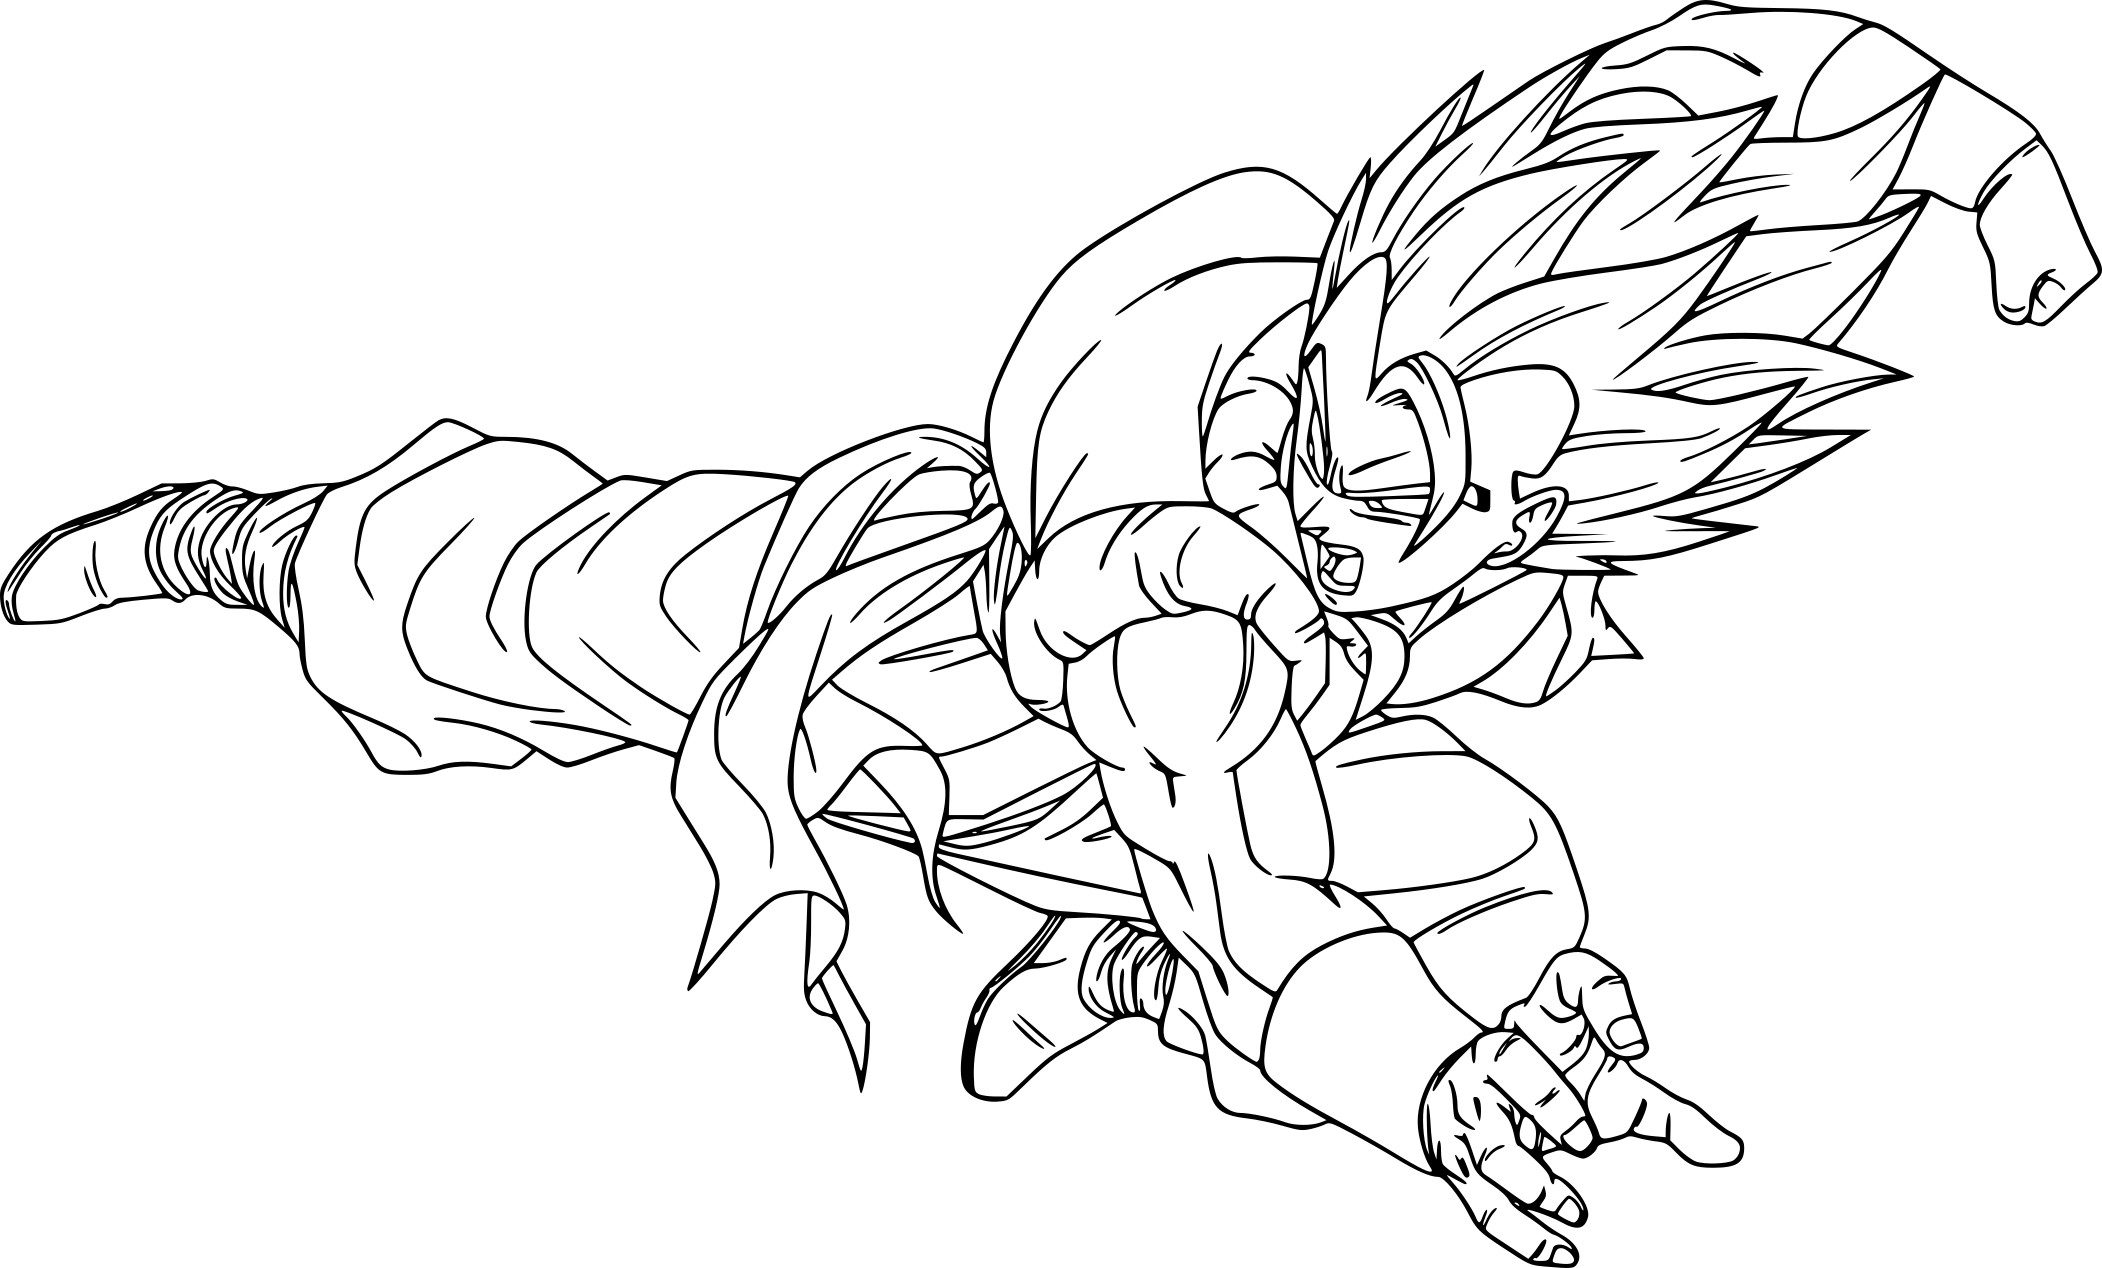 Coloriage Dragon Ball Z Gogeta à Imprimer Sur COLORIAGES .info